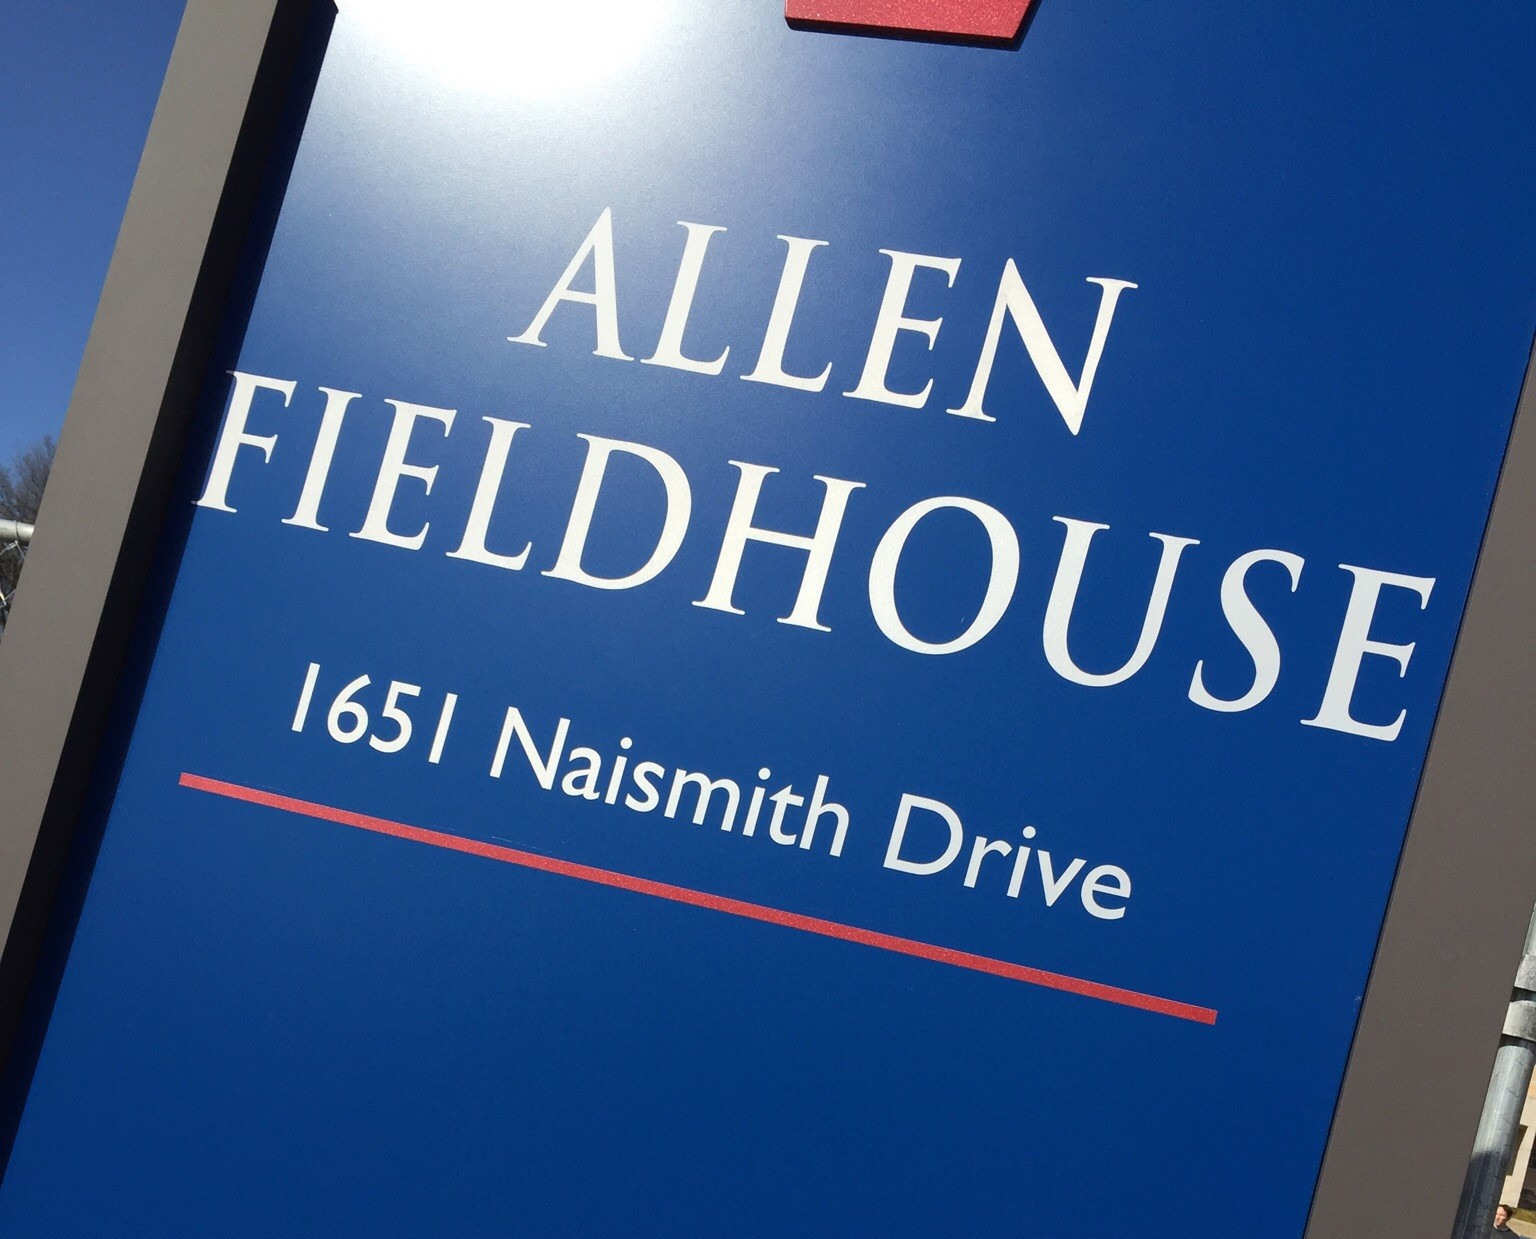 AFH; Naismith Drive. Photo by Ryan Landreth